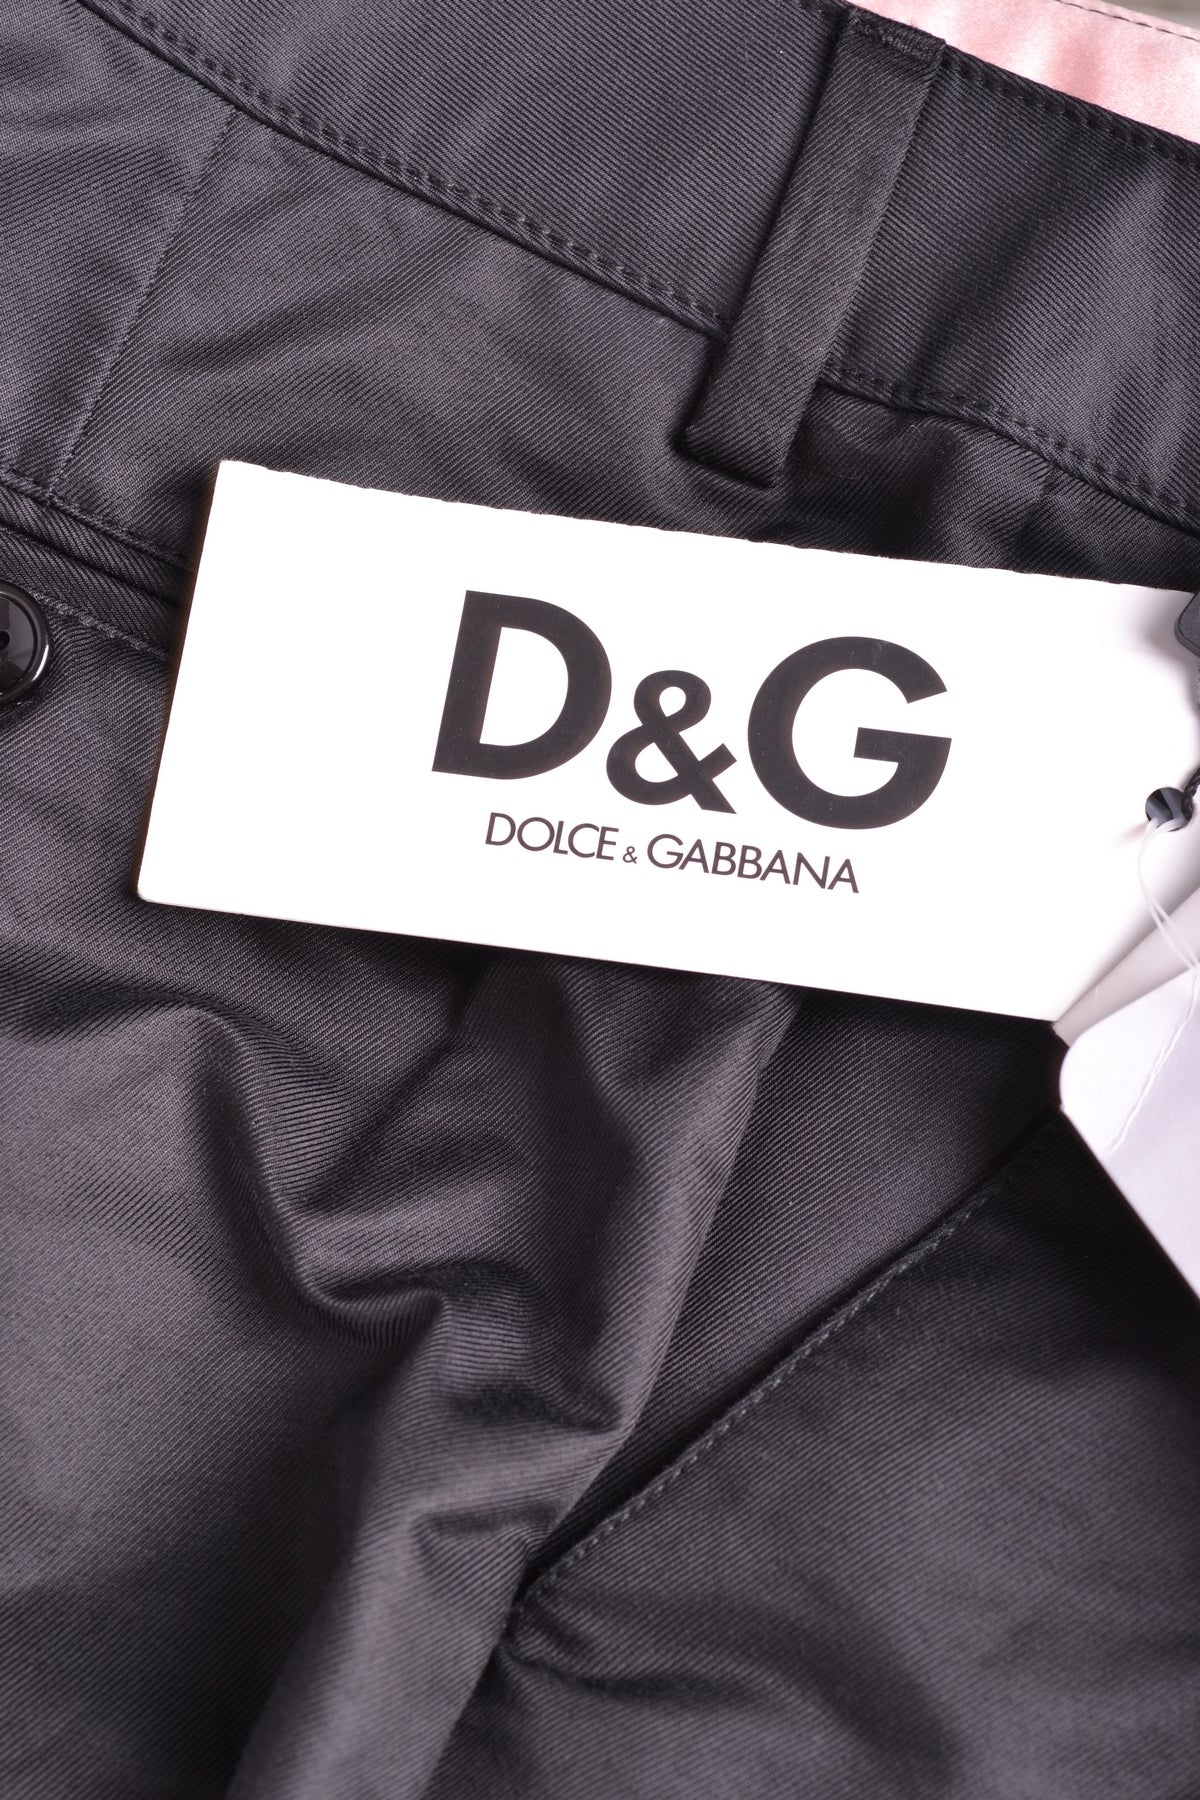 Trousers D&G Dolce & Gabbana-Trousers - WOMAN-Product Details Terms: New With LabelYear: 2017Main Color: BlackGender: WomanMade In: TunisiaSize: ItSeason: Spring / SummerClothing Type: TrousersComposition: Cotton 73%, Polyamide 27%-Keyomi-Sook